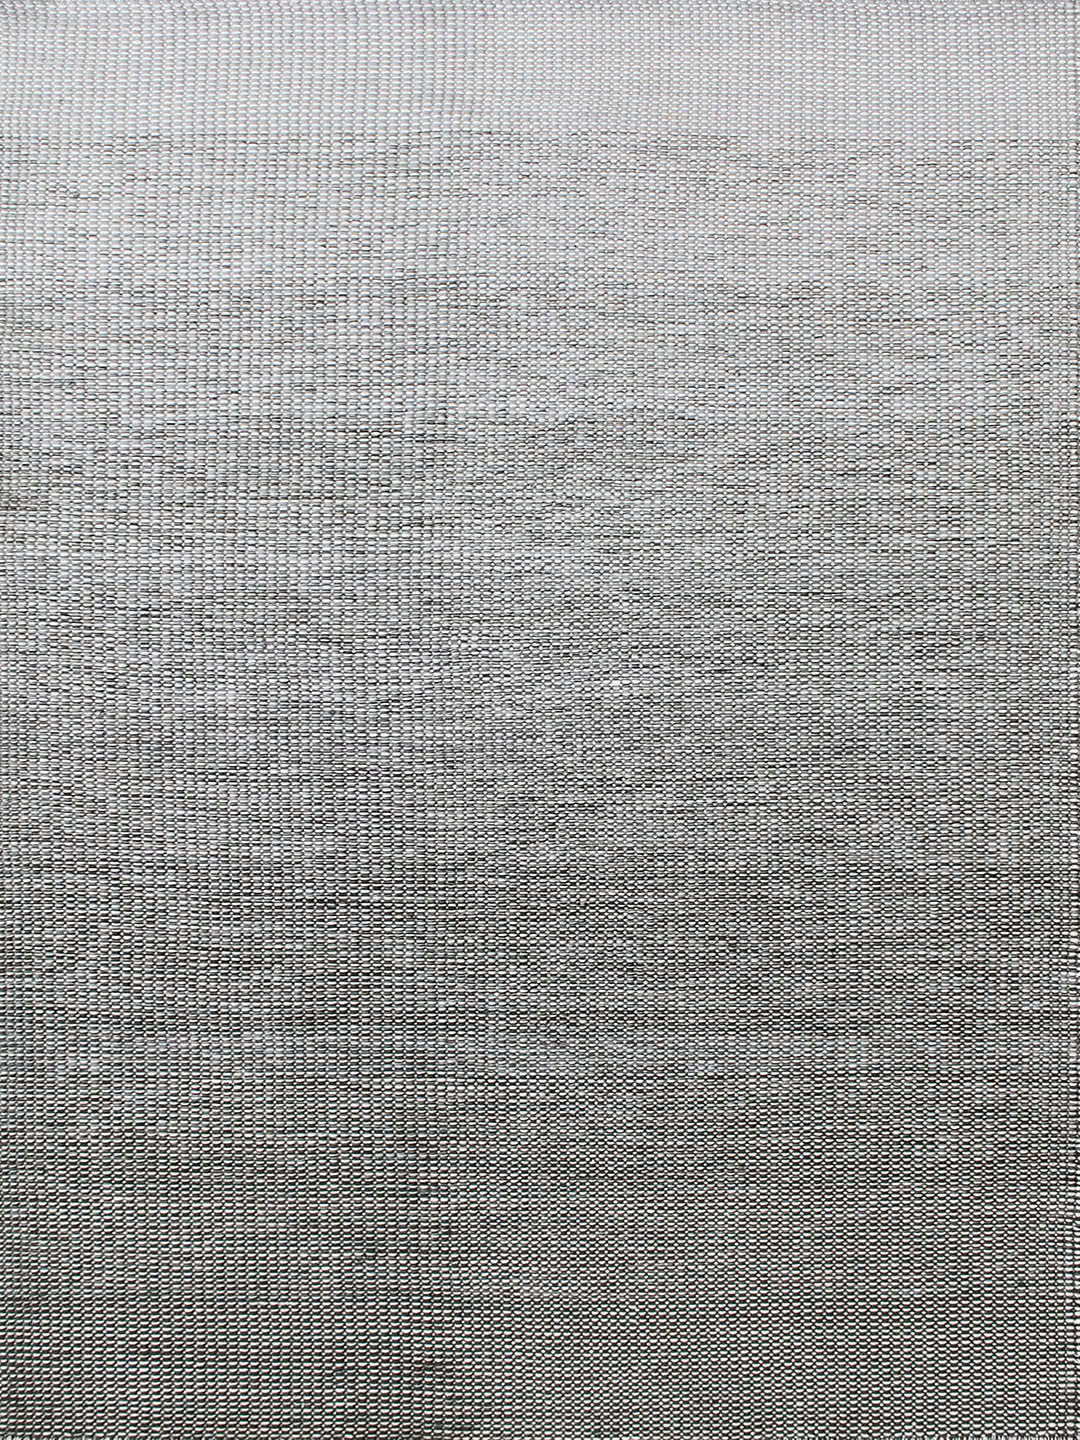 ombre-flat-weave-in-neutral-gradient-colours-large-floor-rugs-stans-perth